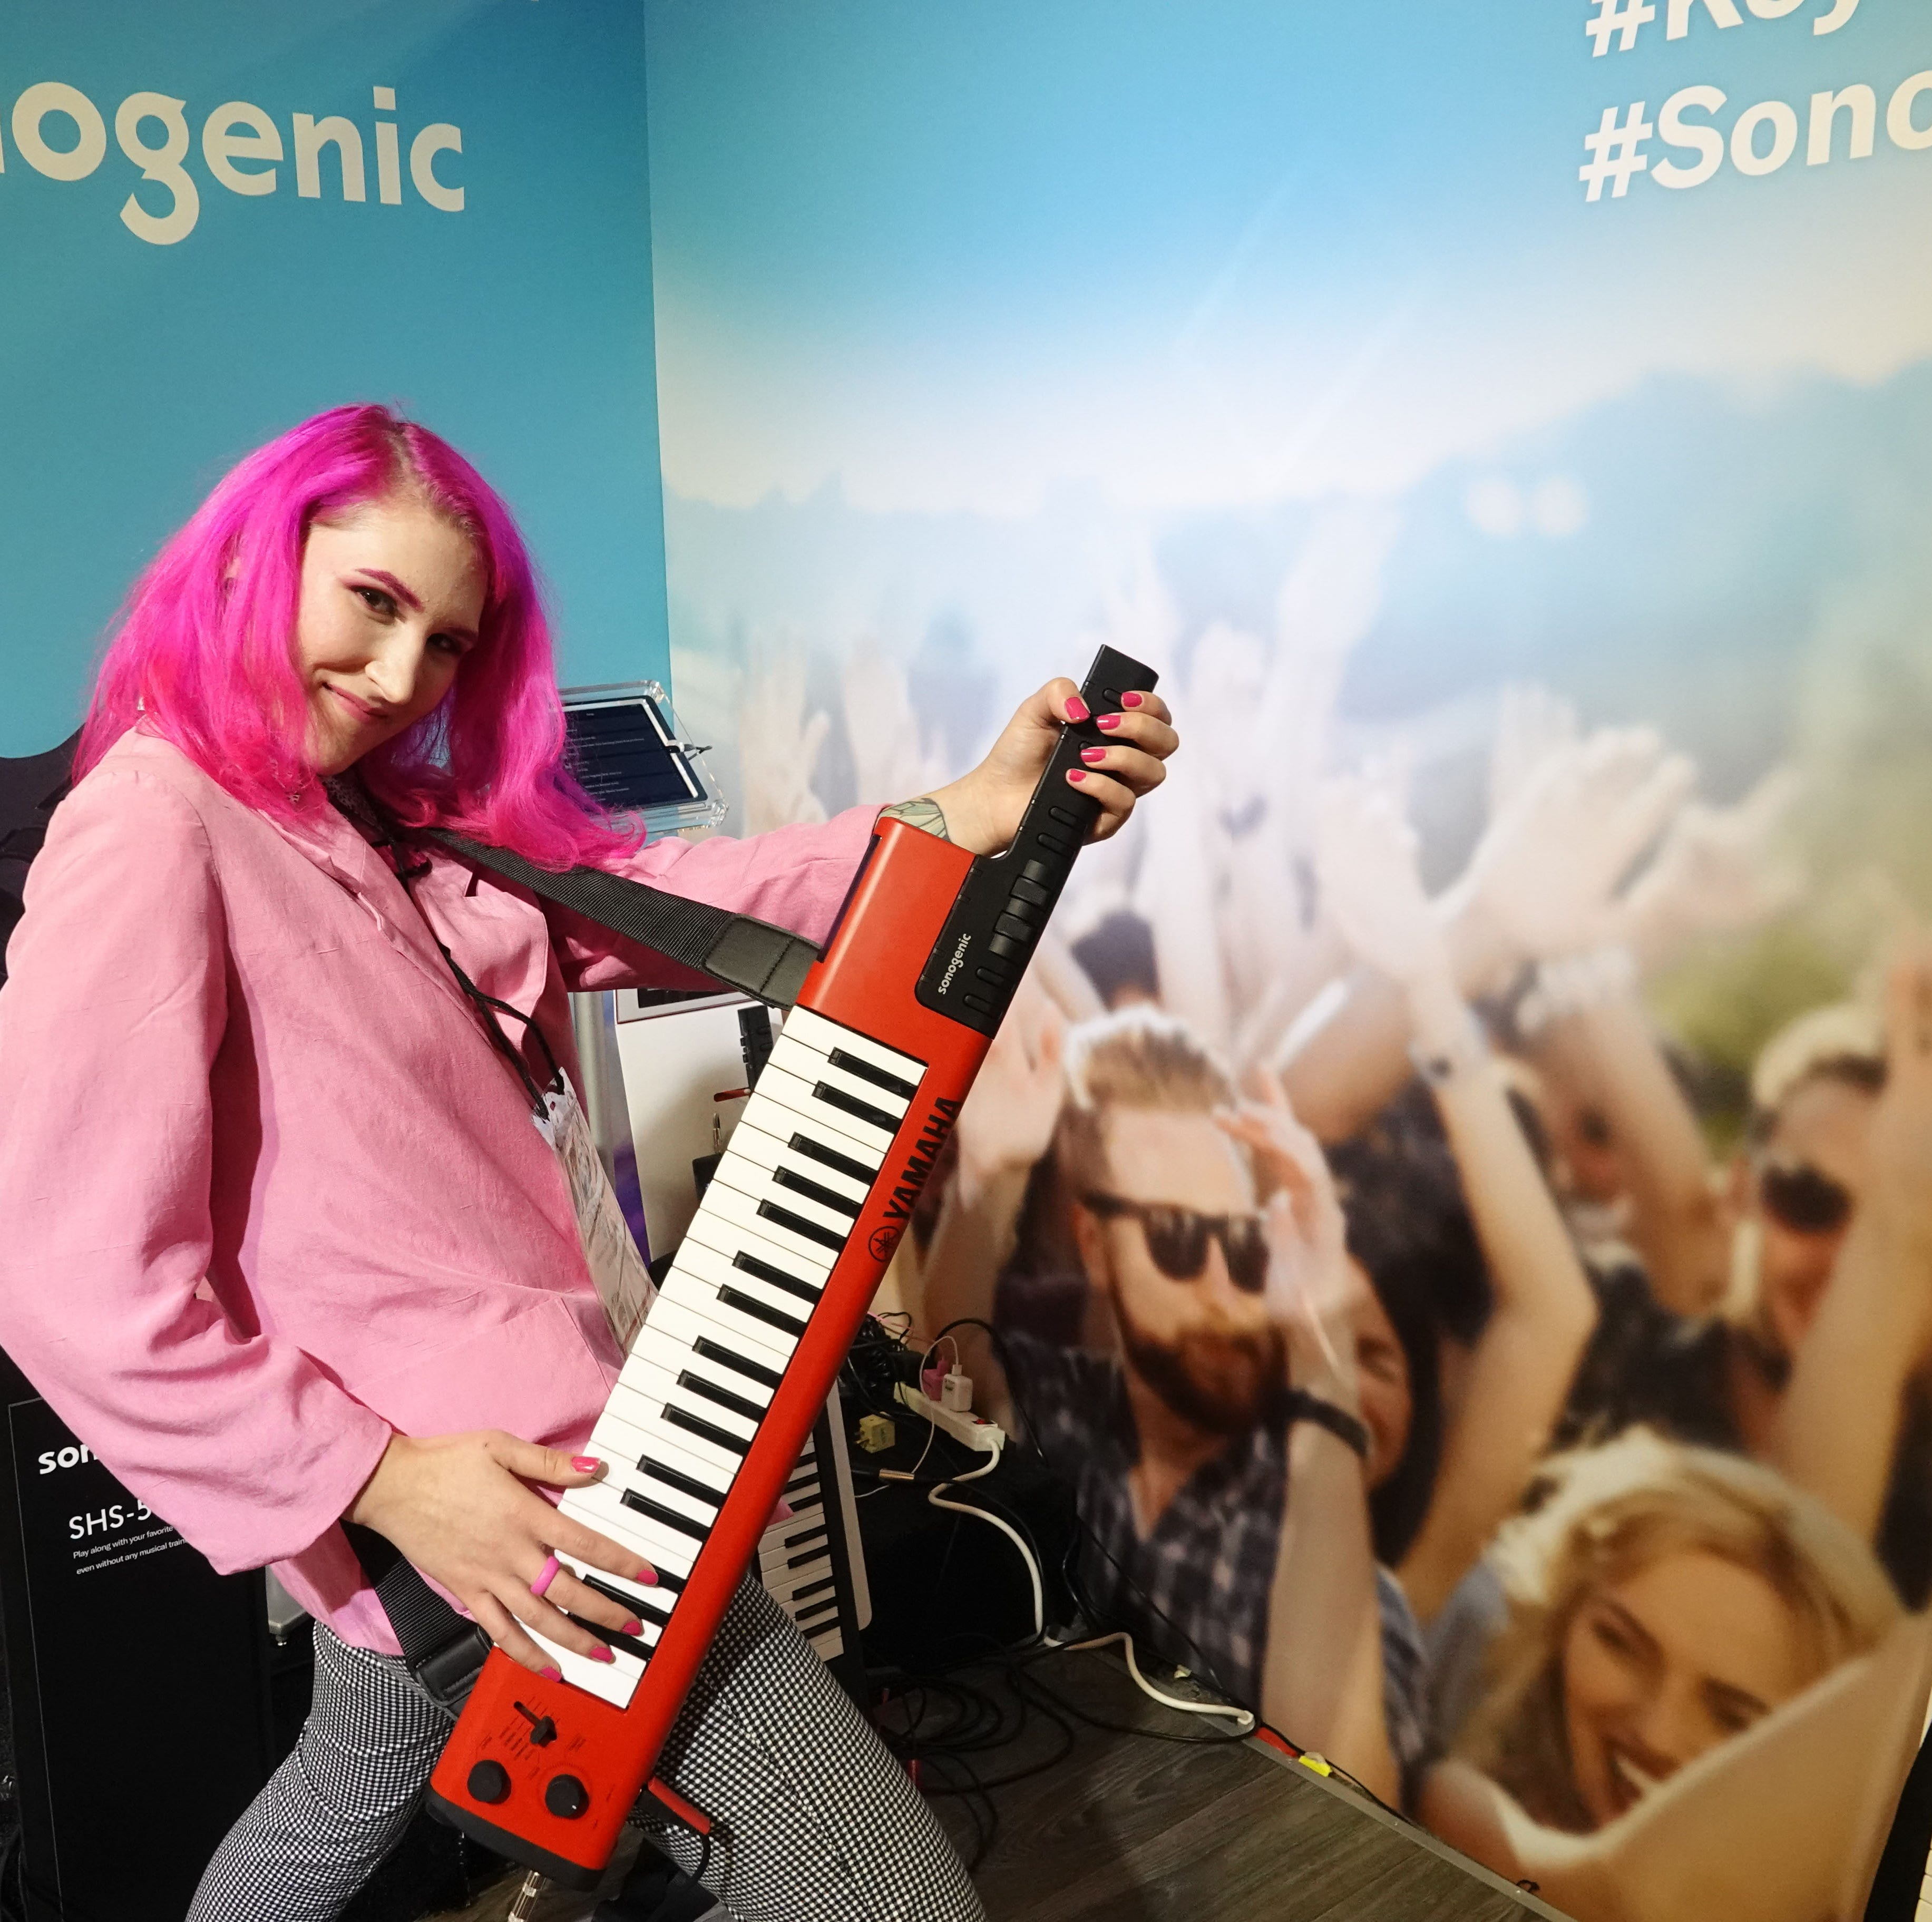 "Demonstrating the Yamaha Sonogenic ""Keytar"" a $299 keyboard designed for young people who don't know how to play. Software enables users to play along with songs in key; they can also play normal piano as well."